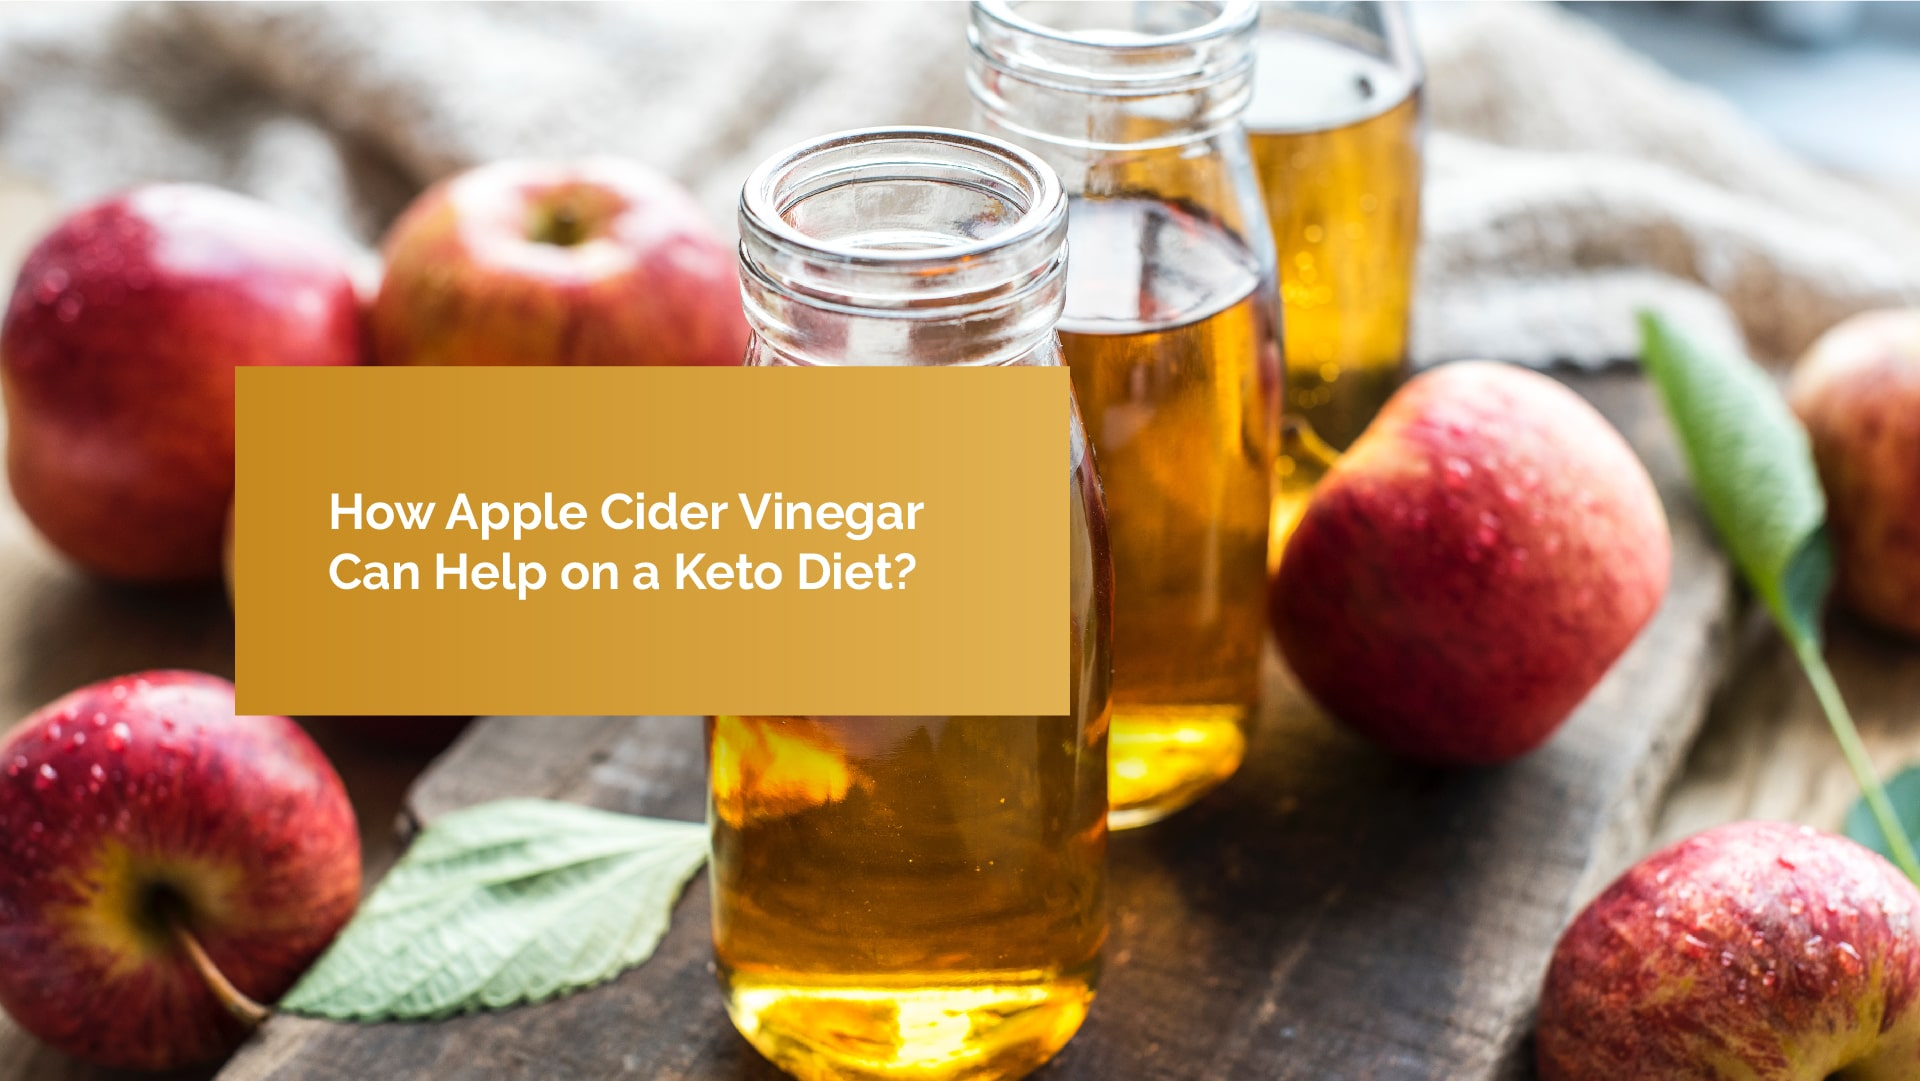 Apple Cider Vinegar on Keto Diet